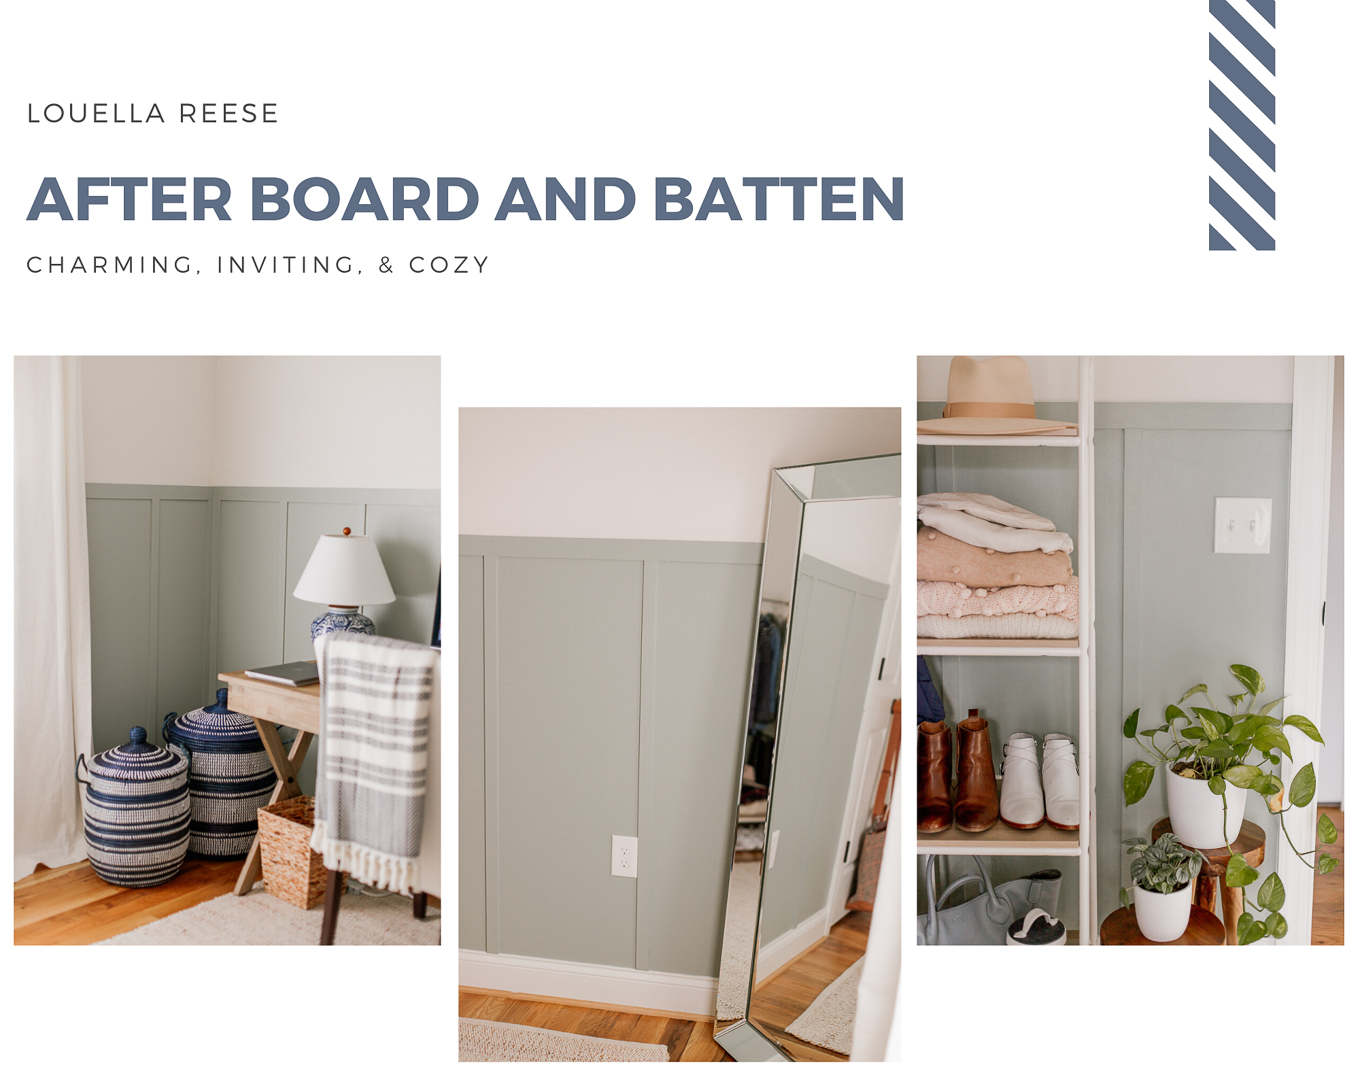 After Board and Batten Office Photos | Louella Reese